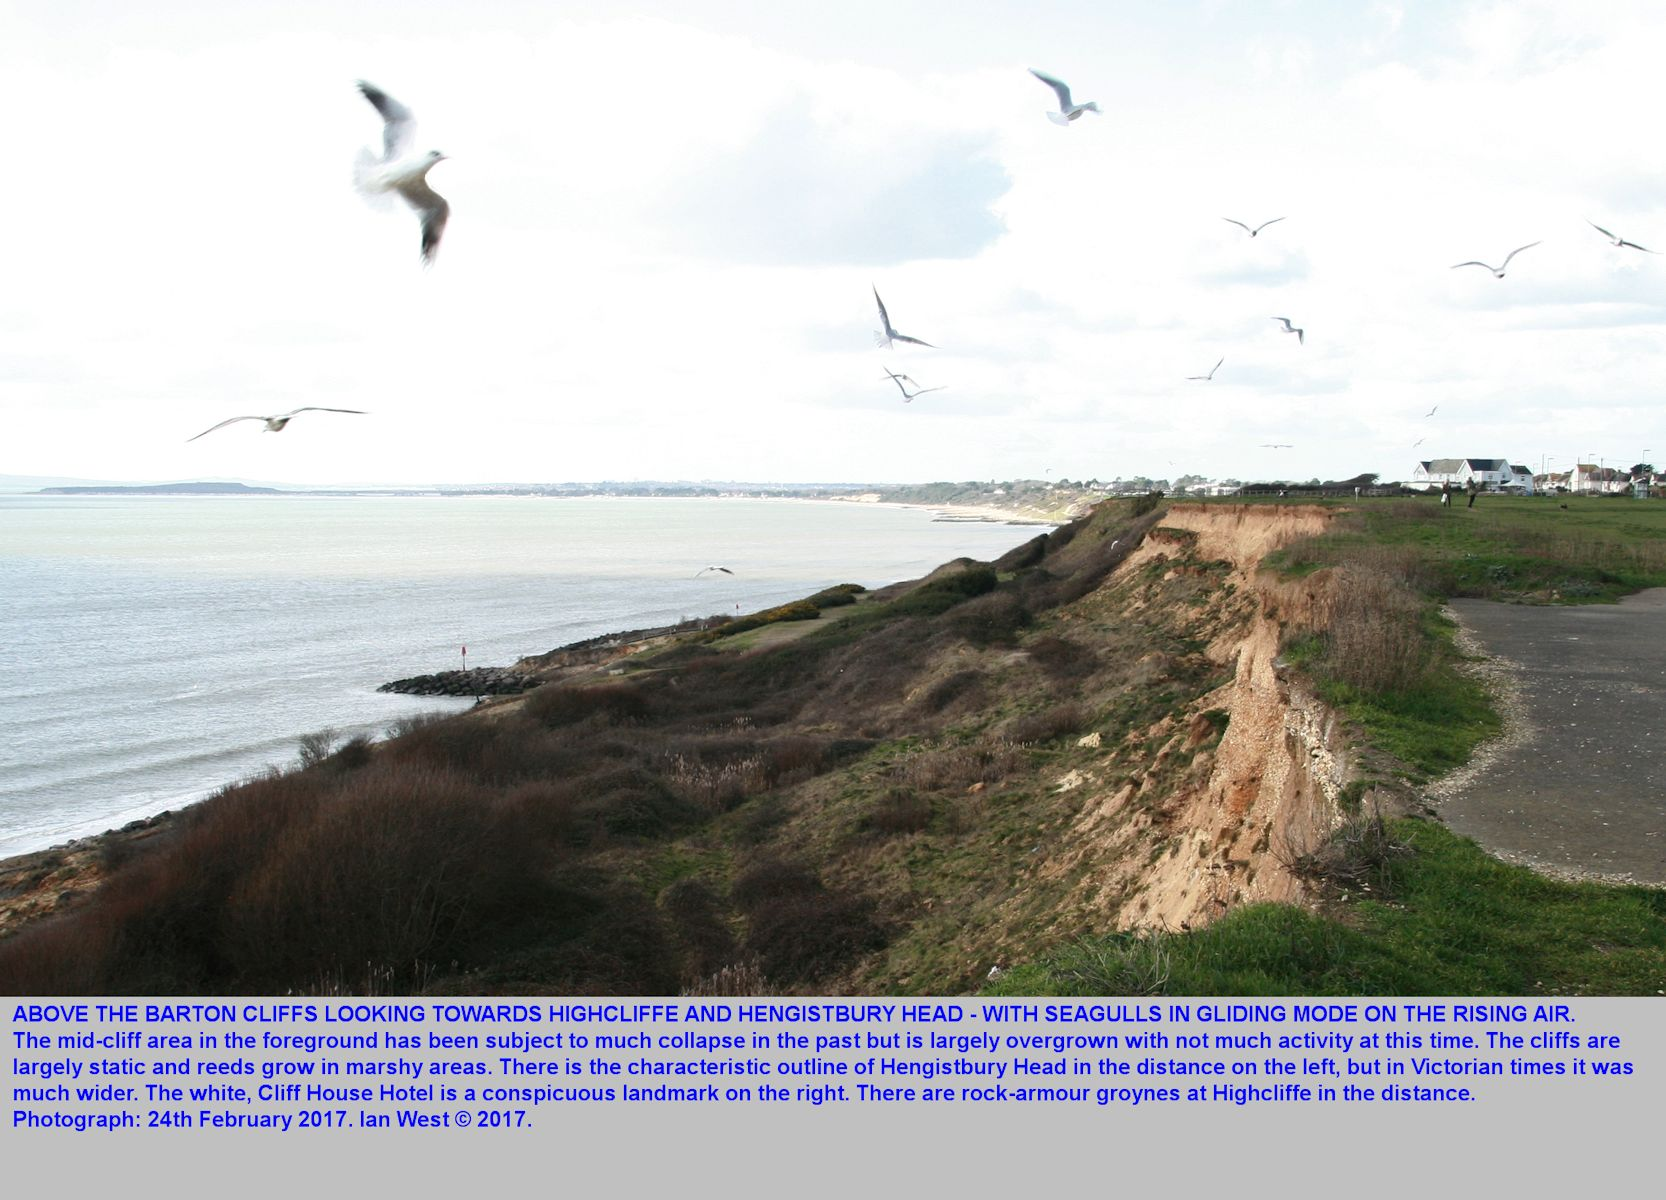 A general view of the cliffs from Barton-on-Sea, Hampshire, in a westward direction, with gulls rising on the cliff thermals